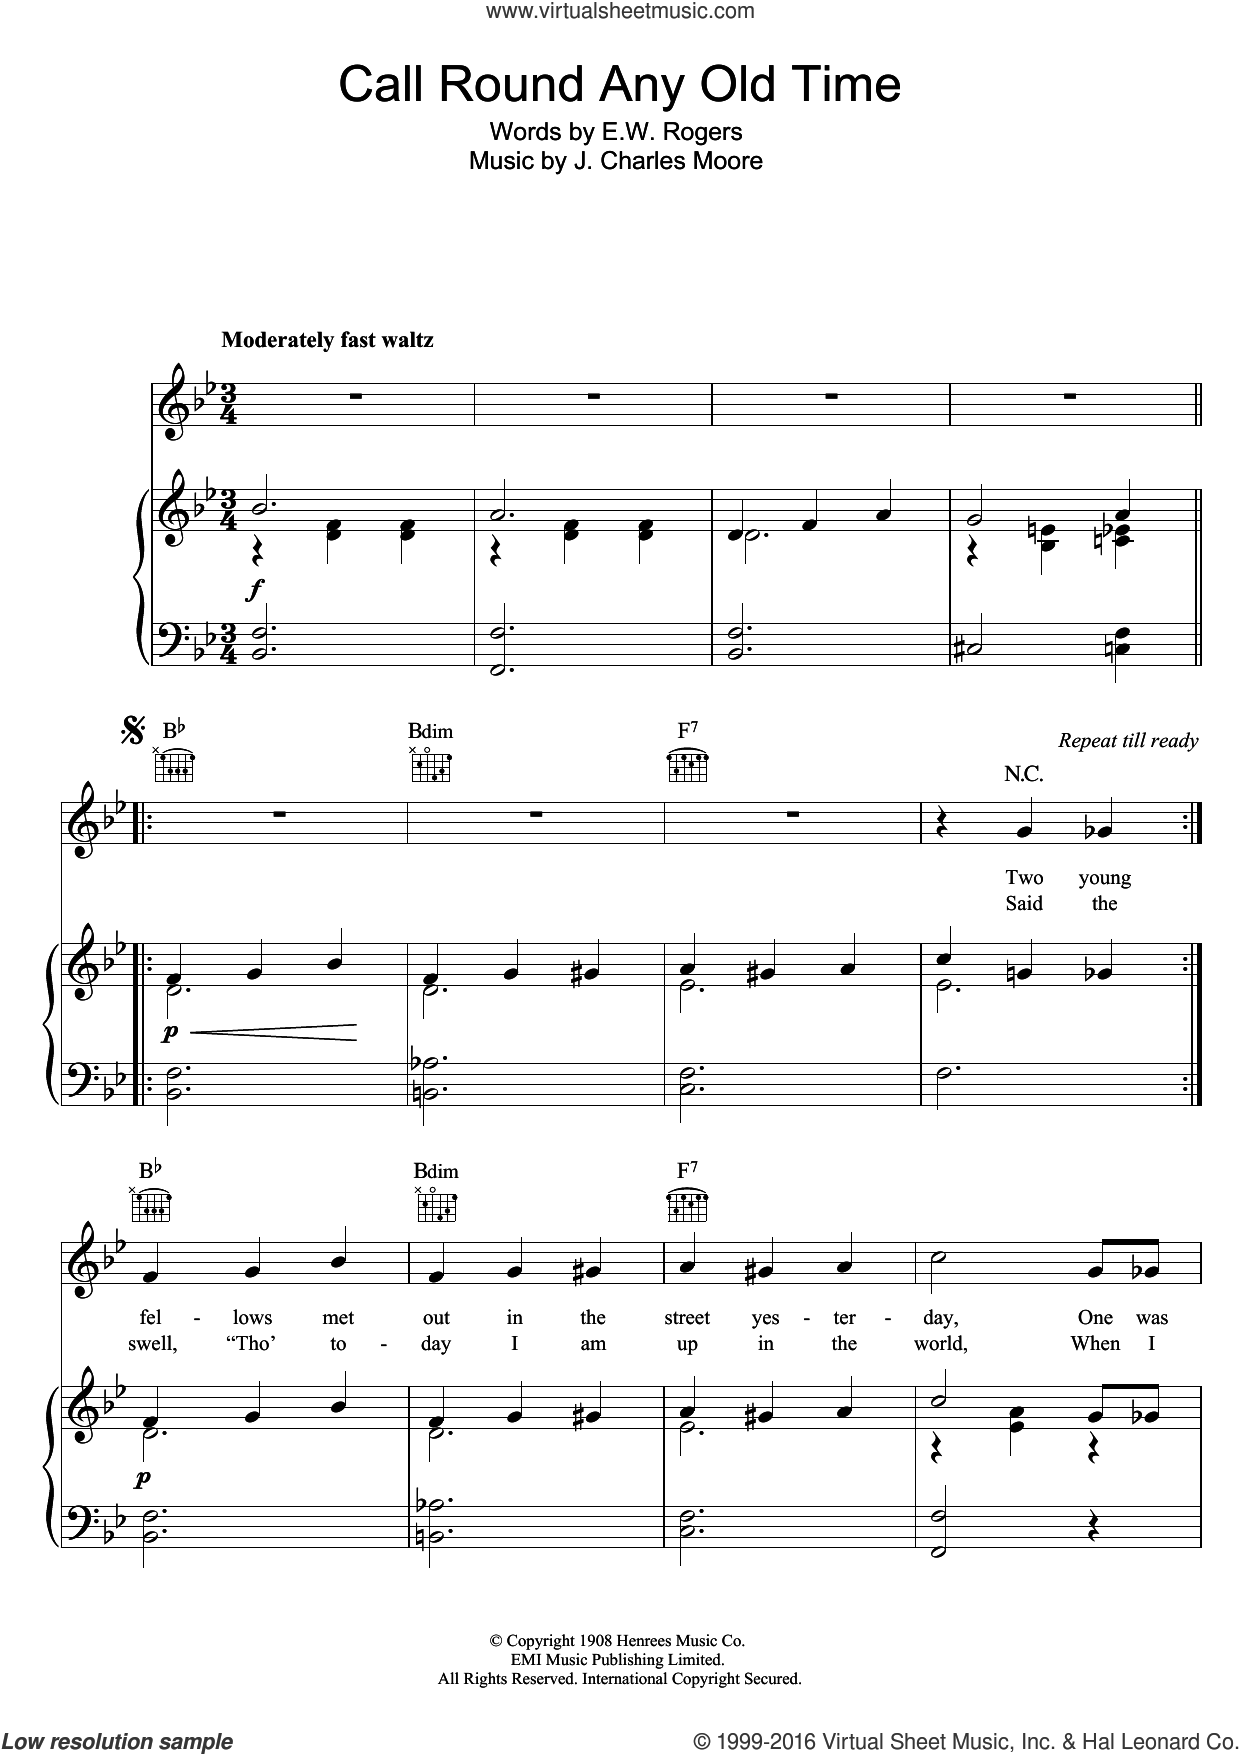 Call Round Any Old Time sheet music for voice, piano or guitar by Victoria Monks, E.W. Rogers and J. Charles Moore, intermediate skill level